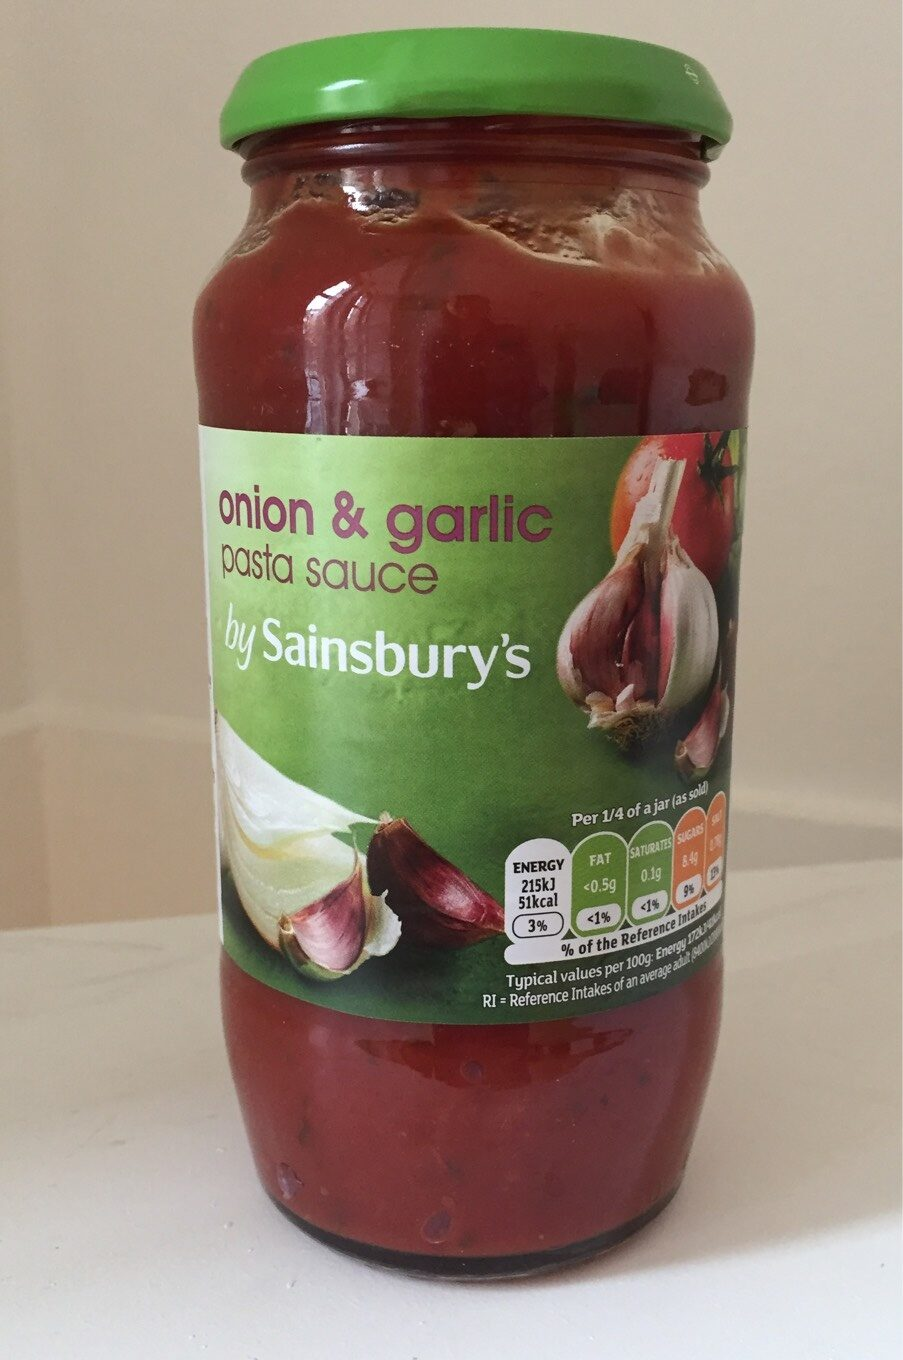 Onion Garlic Pasta Sauce Sainsbury